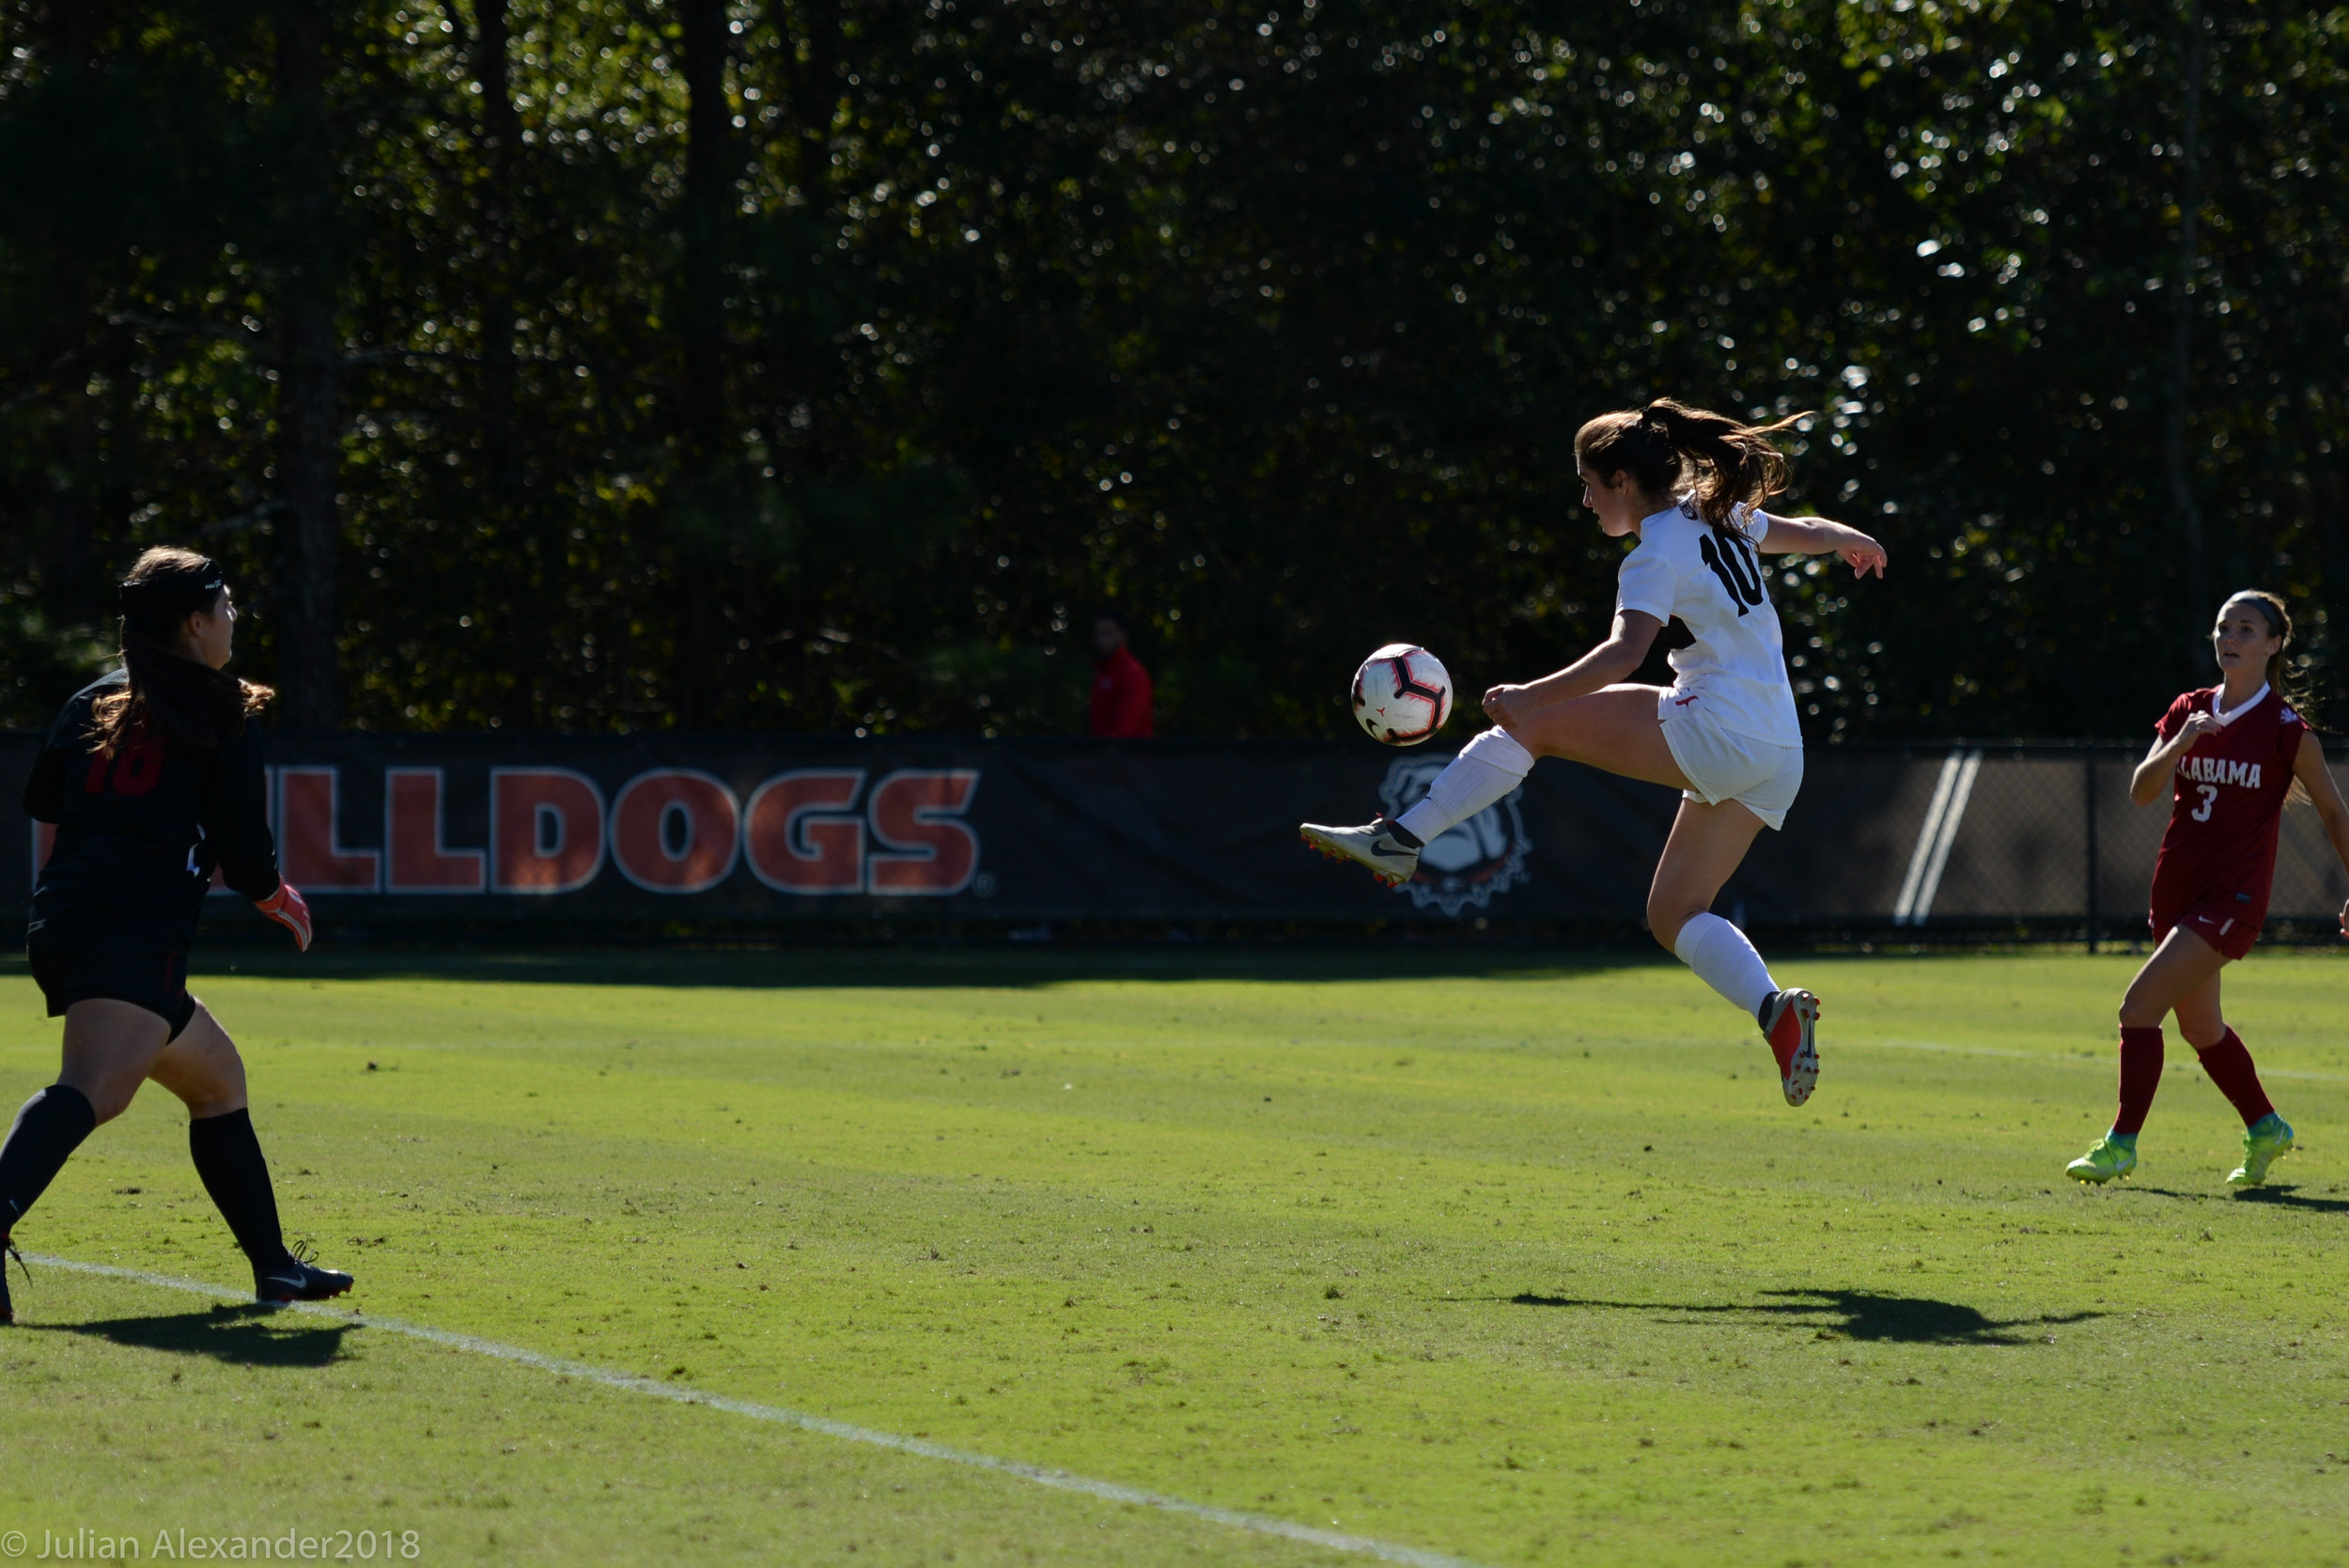 University of Georgia forward Delaney Erwin (10) kicks the ball for a shot during a match against the Alabama Crimson Tide on Oct. 21, 2018 at the Turner Soccer Complex in Athens, Georgia. The Dawgs and Crimson Tide finished the match in a draw 1-1 in double overtime. (Photo/Julian Alexander)